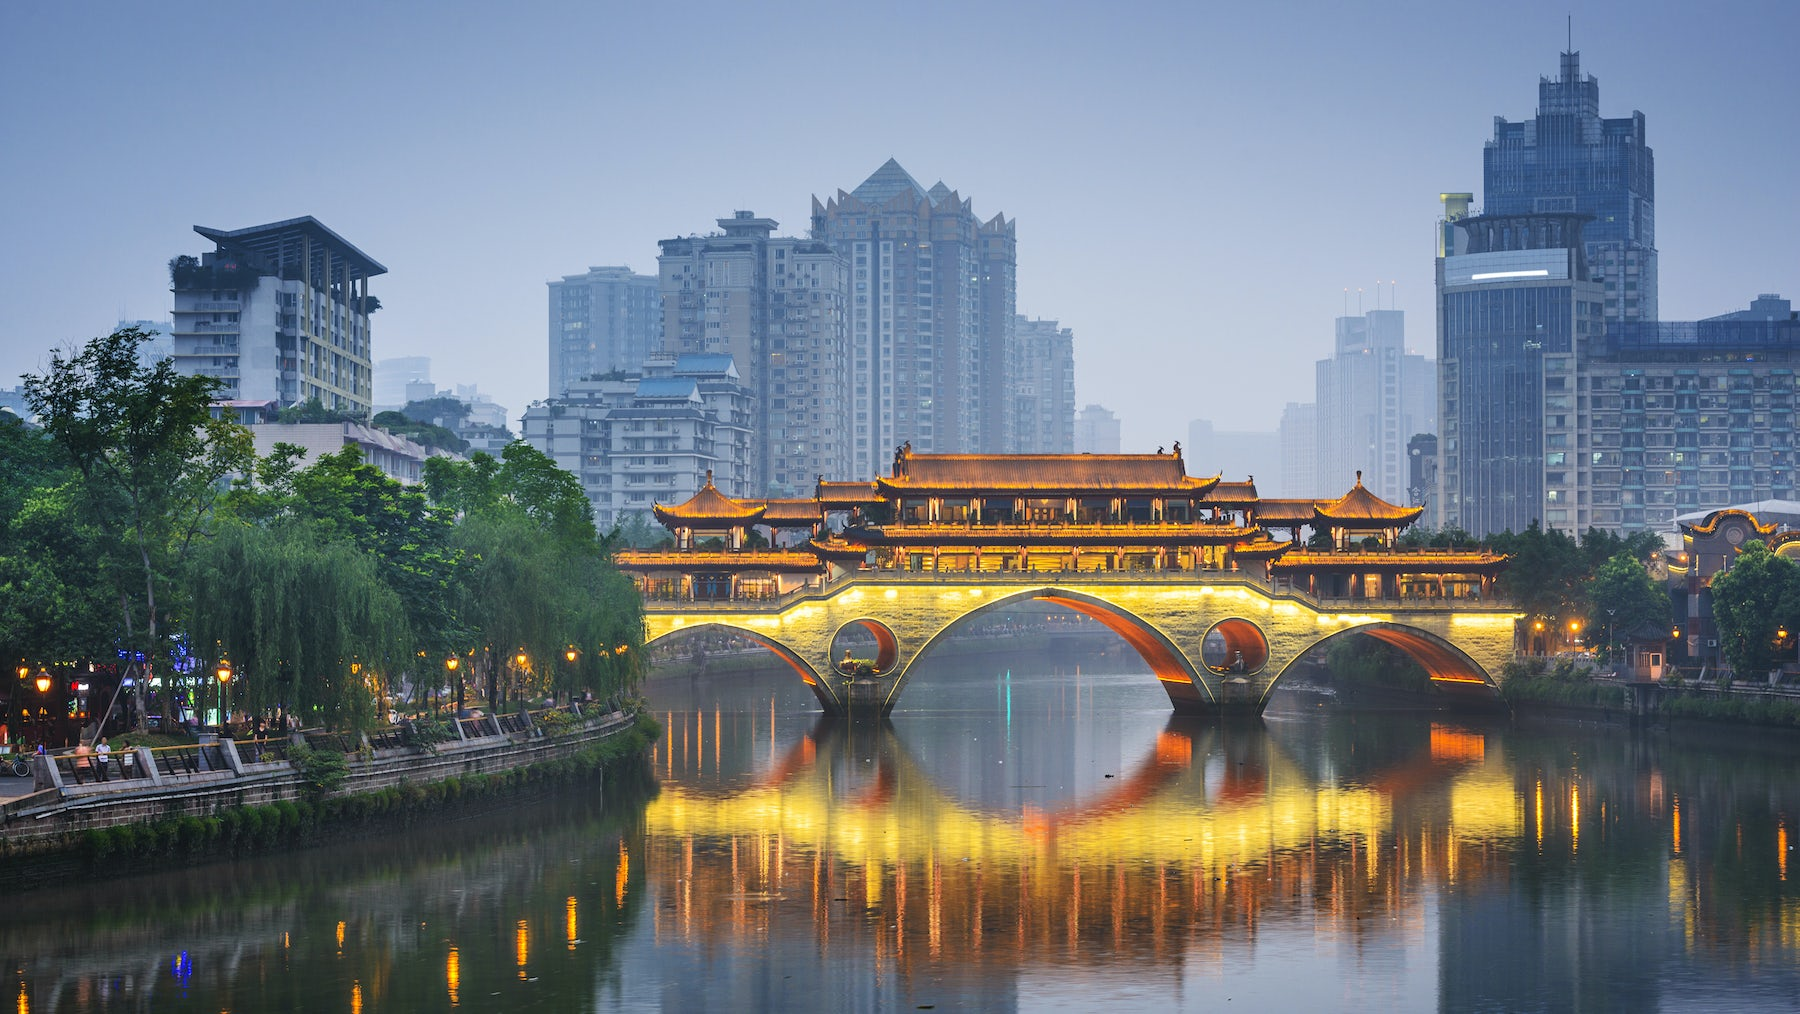 Chengdu, the capital of Sichuan province, China | Source: Shutterstock